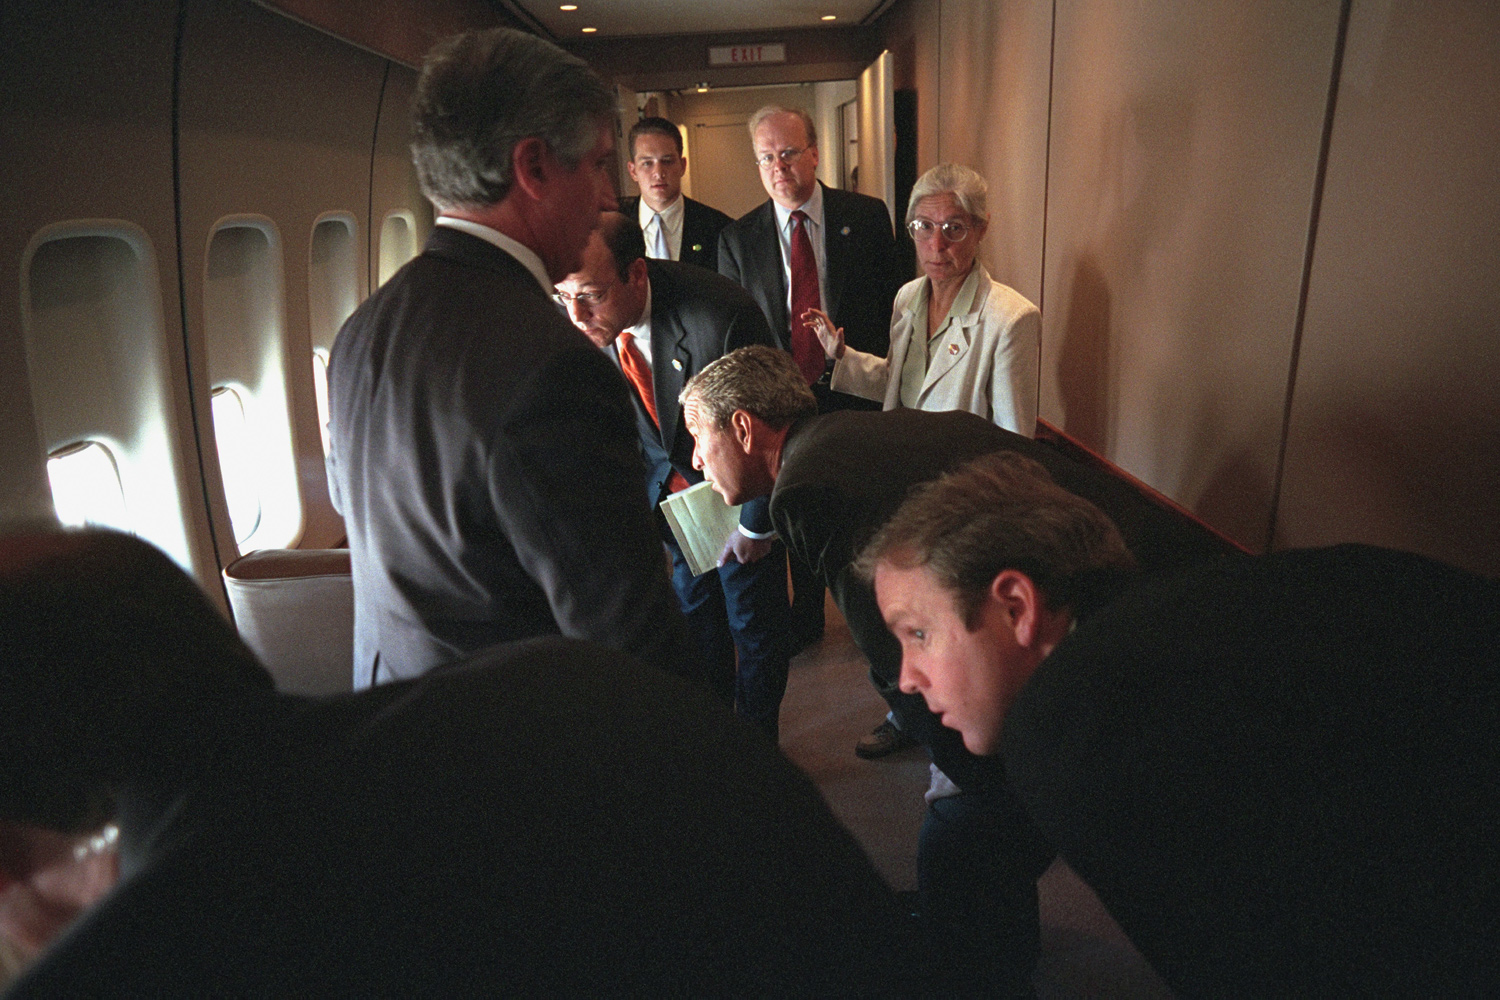 Air Force One. Sept. 11, 2001 : President George W. Bush : Welcome to Eric Draper Photography -  Commercial, Editorial, Weddings